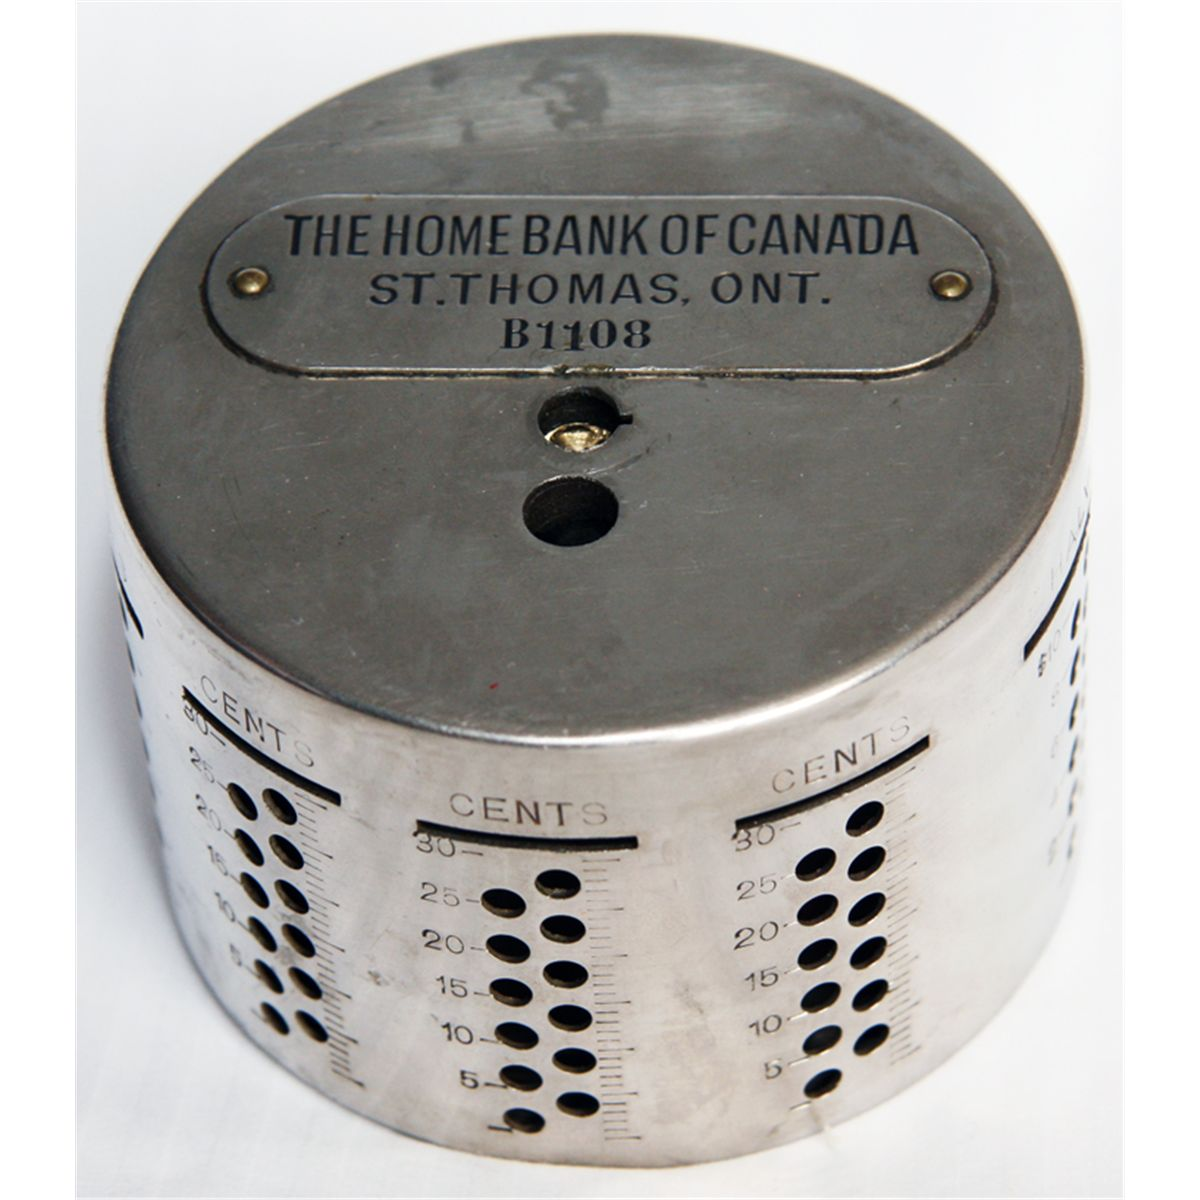 Home Bank Of Canada The Home Bank Of Canada St Thomas Ont An Cylindrical Bank Slots Arranged Horizontally Along Top